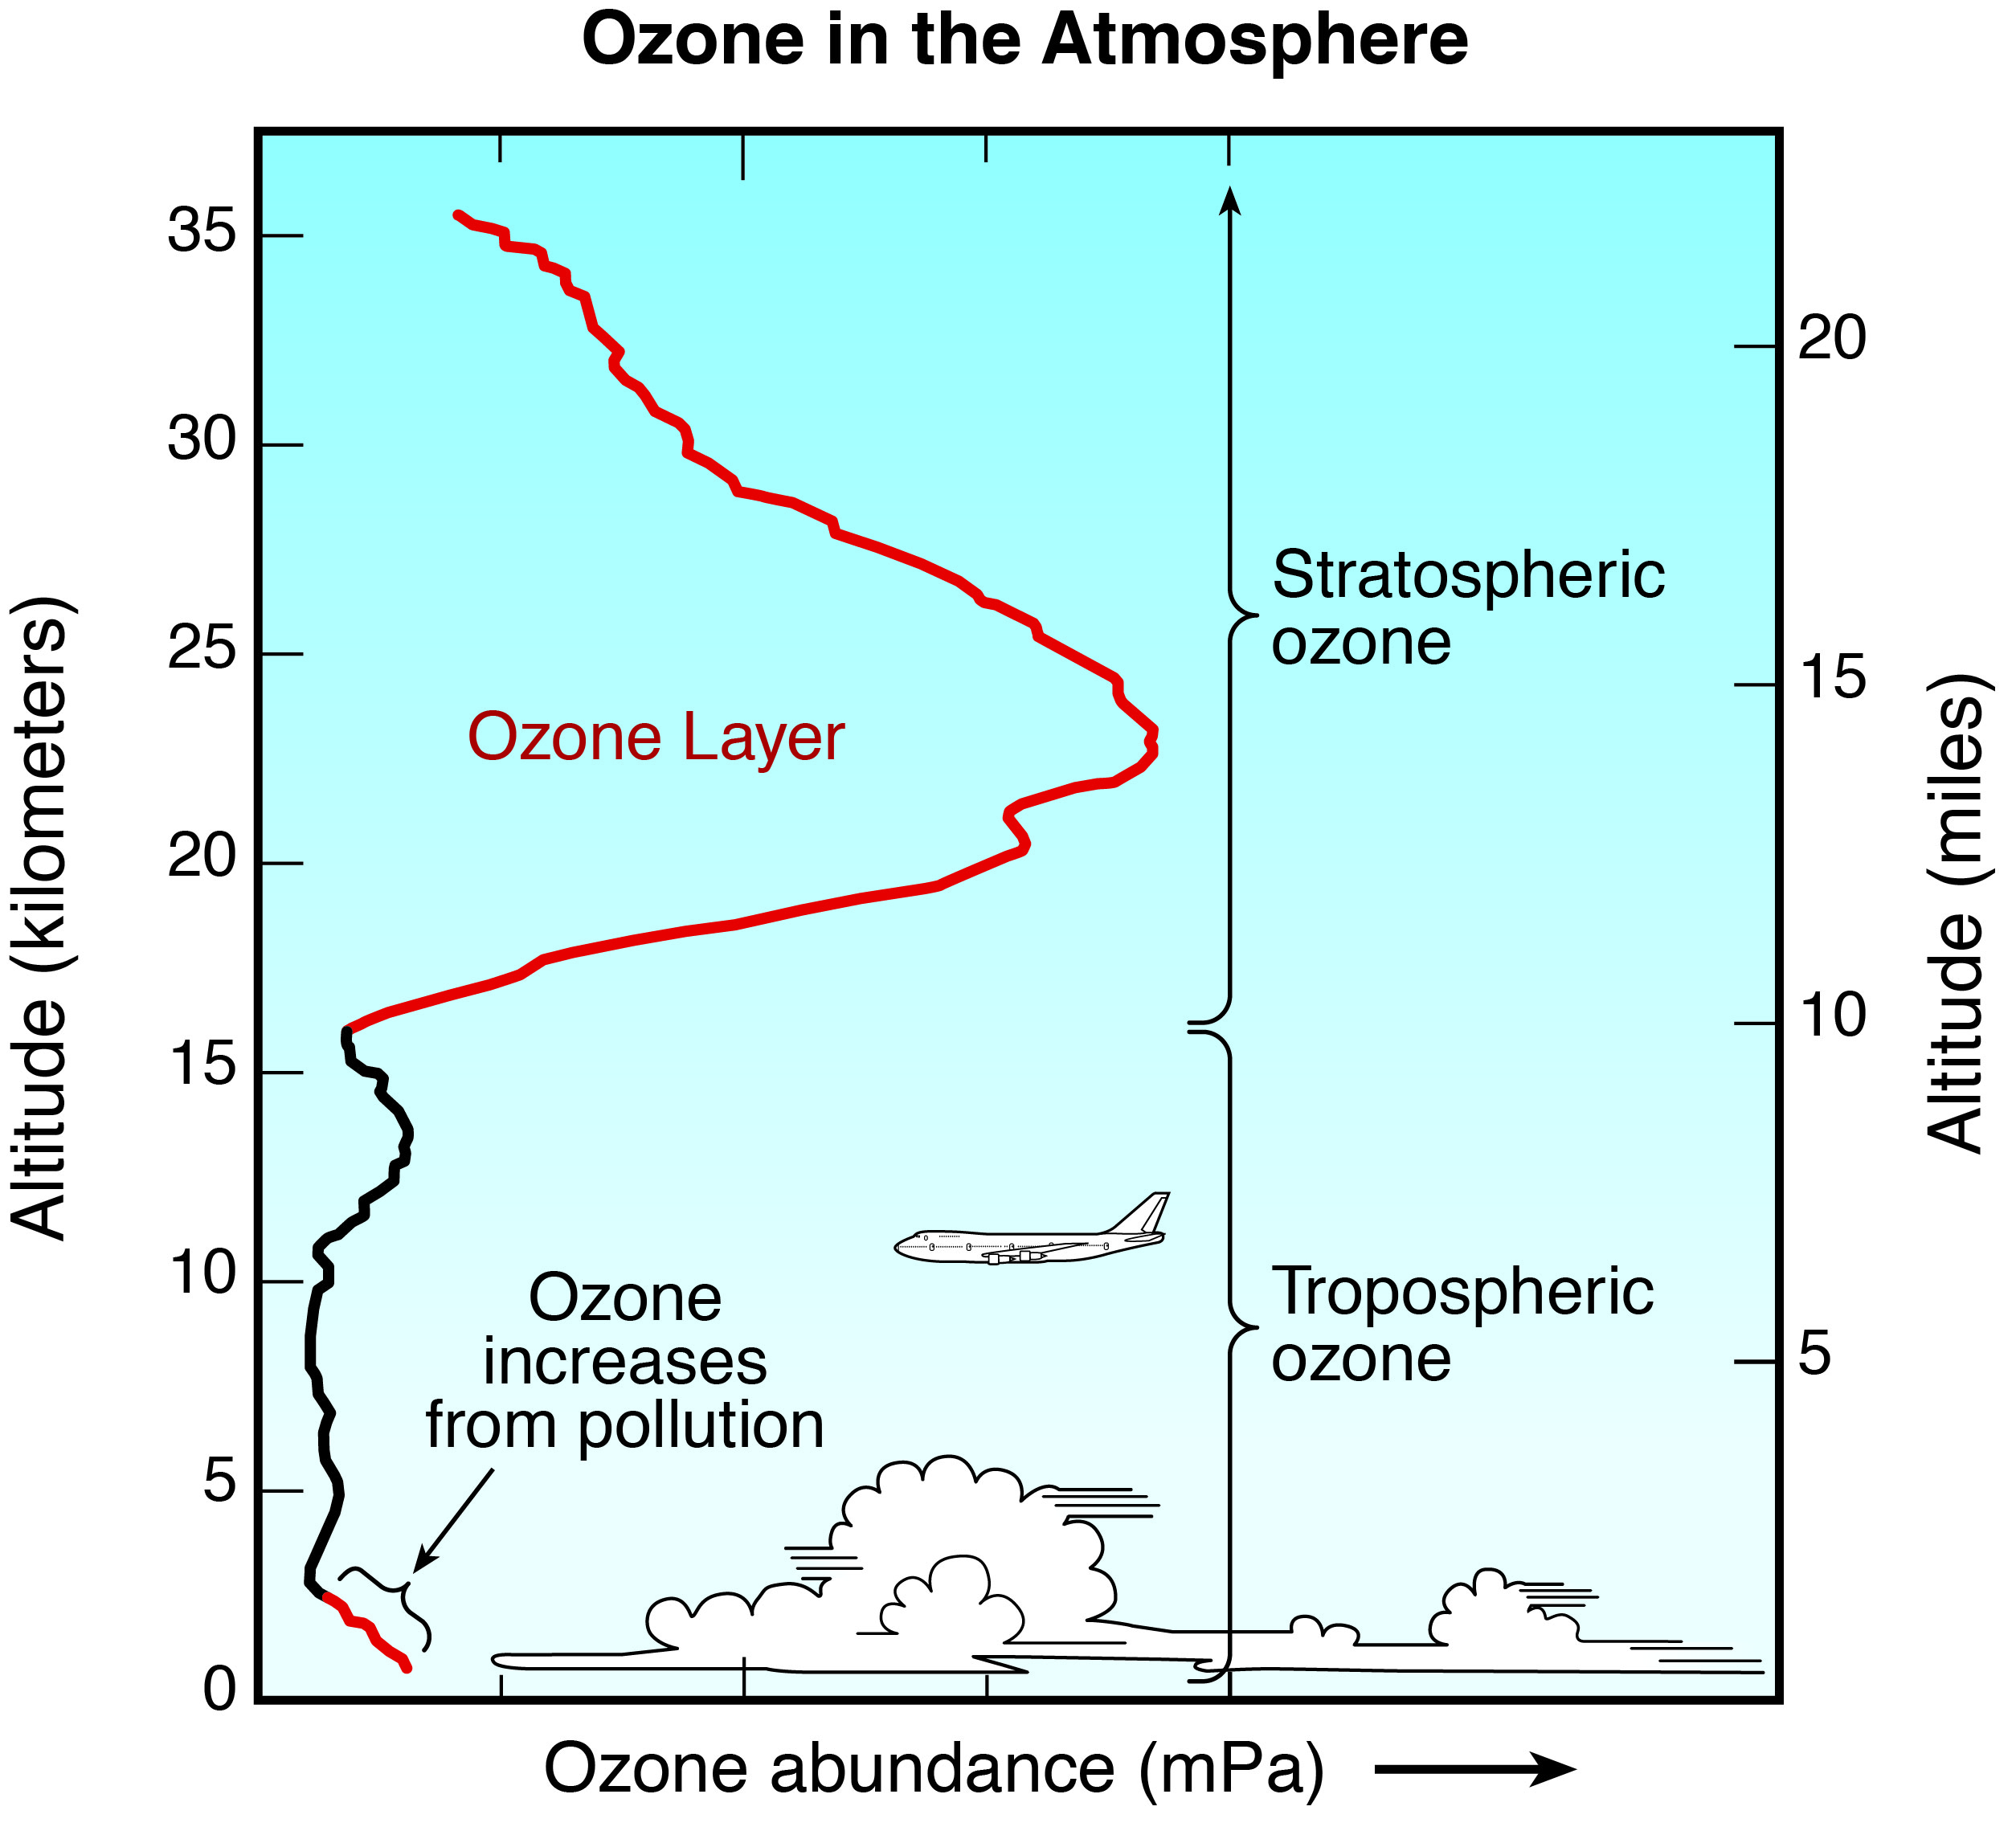 ozone-distribution-in-the-atmosphere